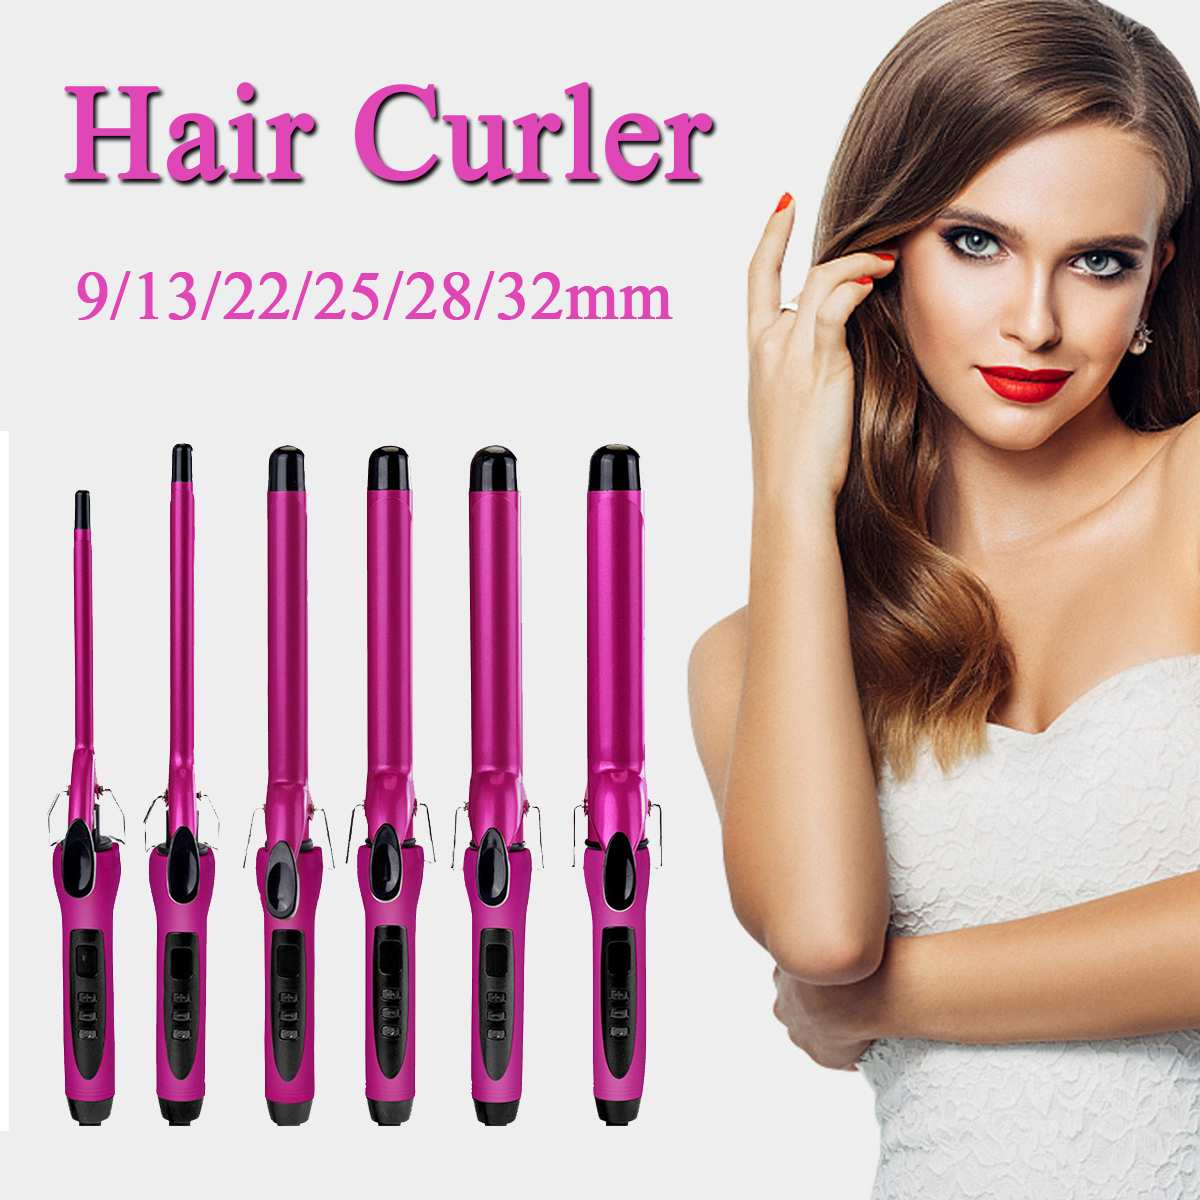 9/13/22/25/28/32mm Professional Hair Curling Iron Ceramic Hair Curler Quick Heat Curling Hair Waver Styling Tool 80~210 LED